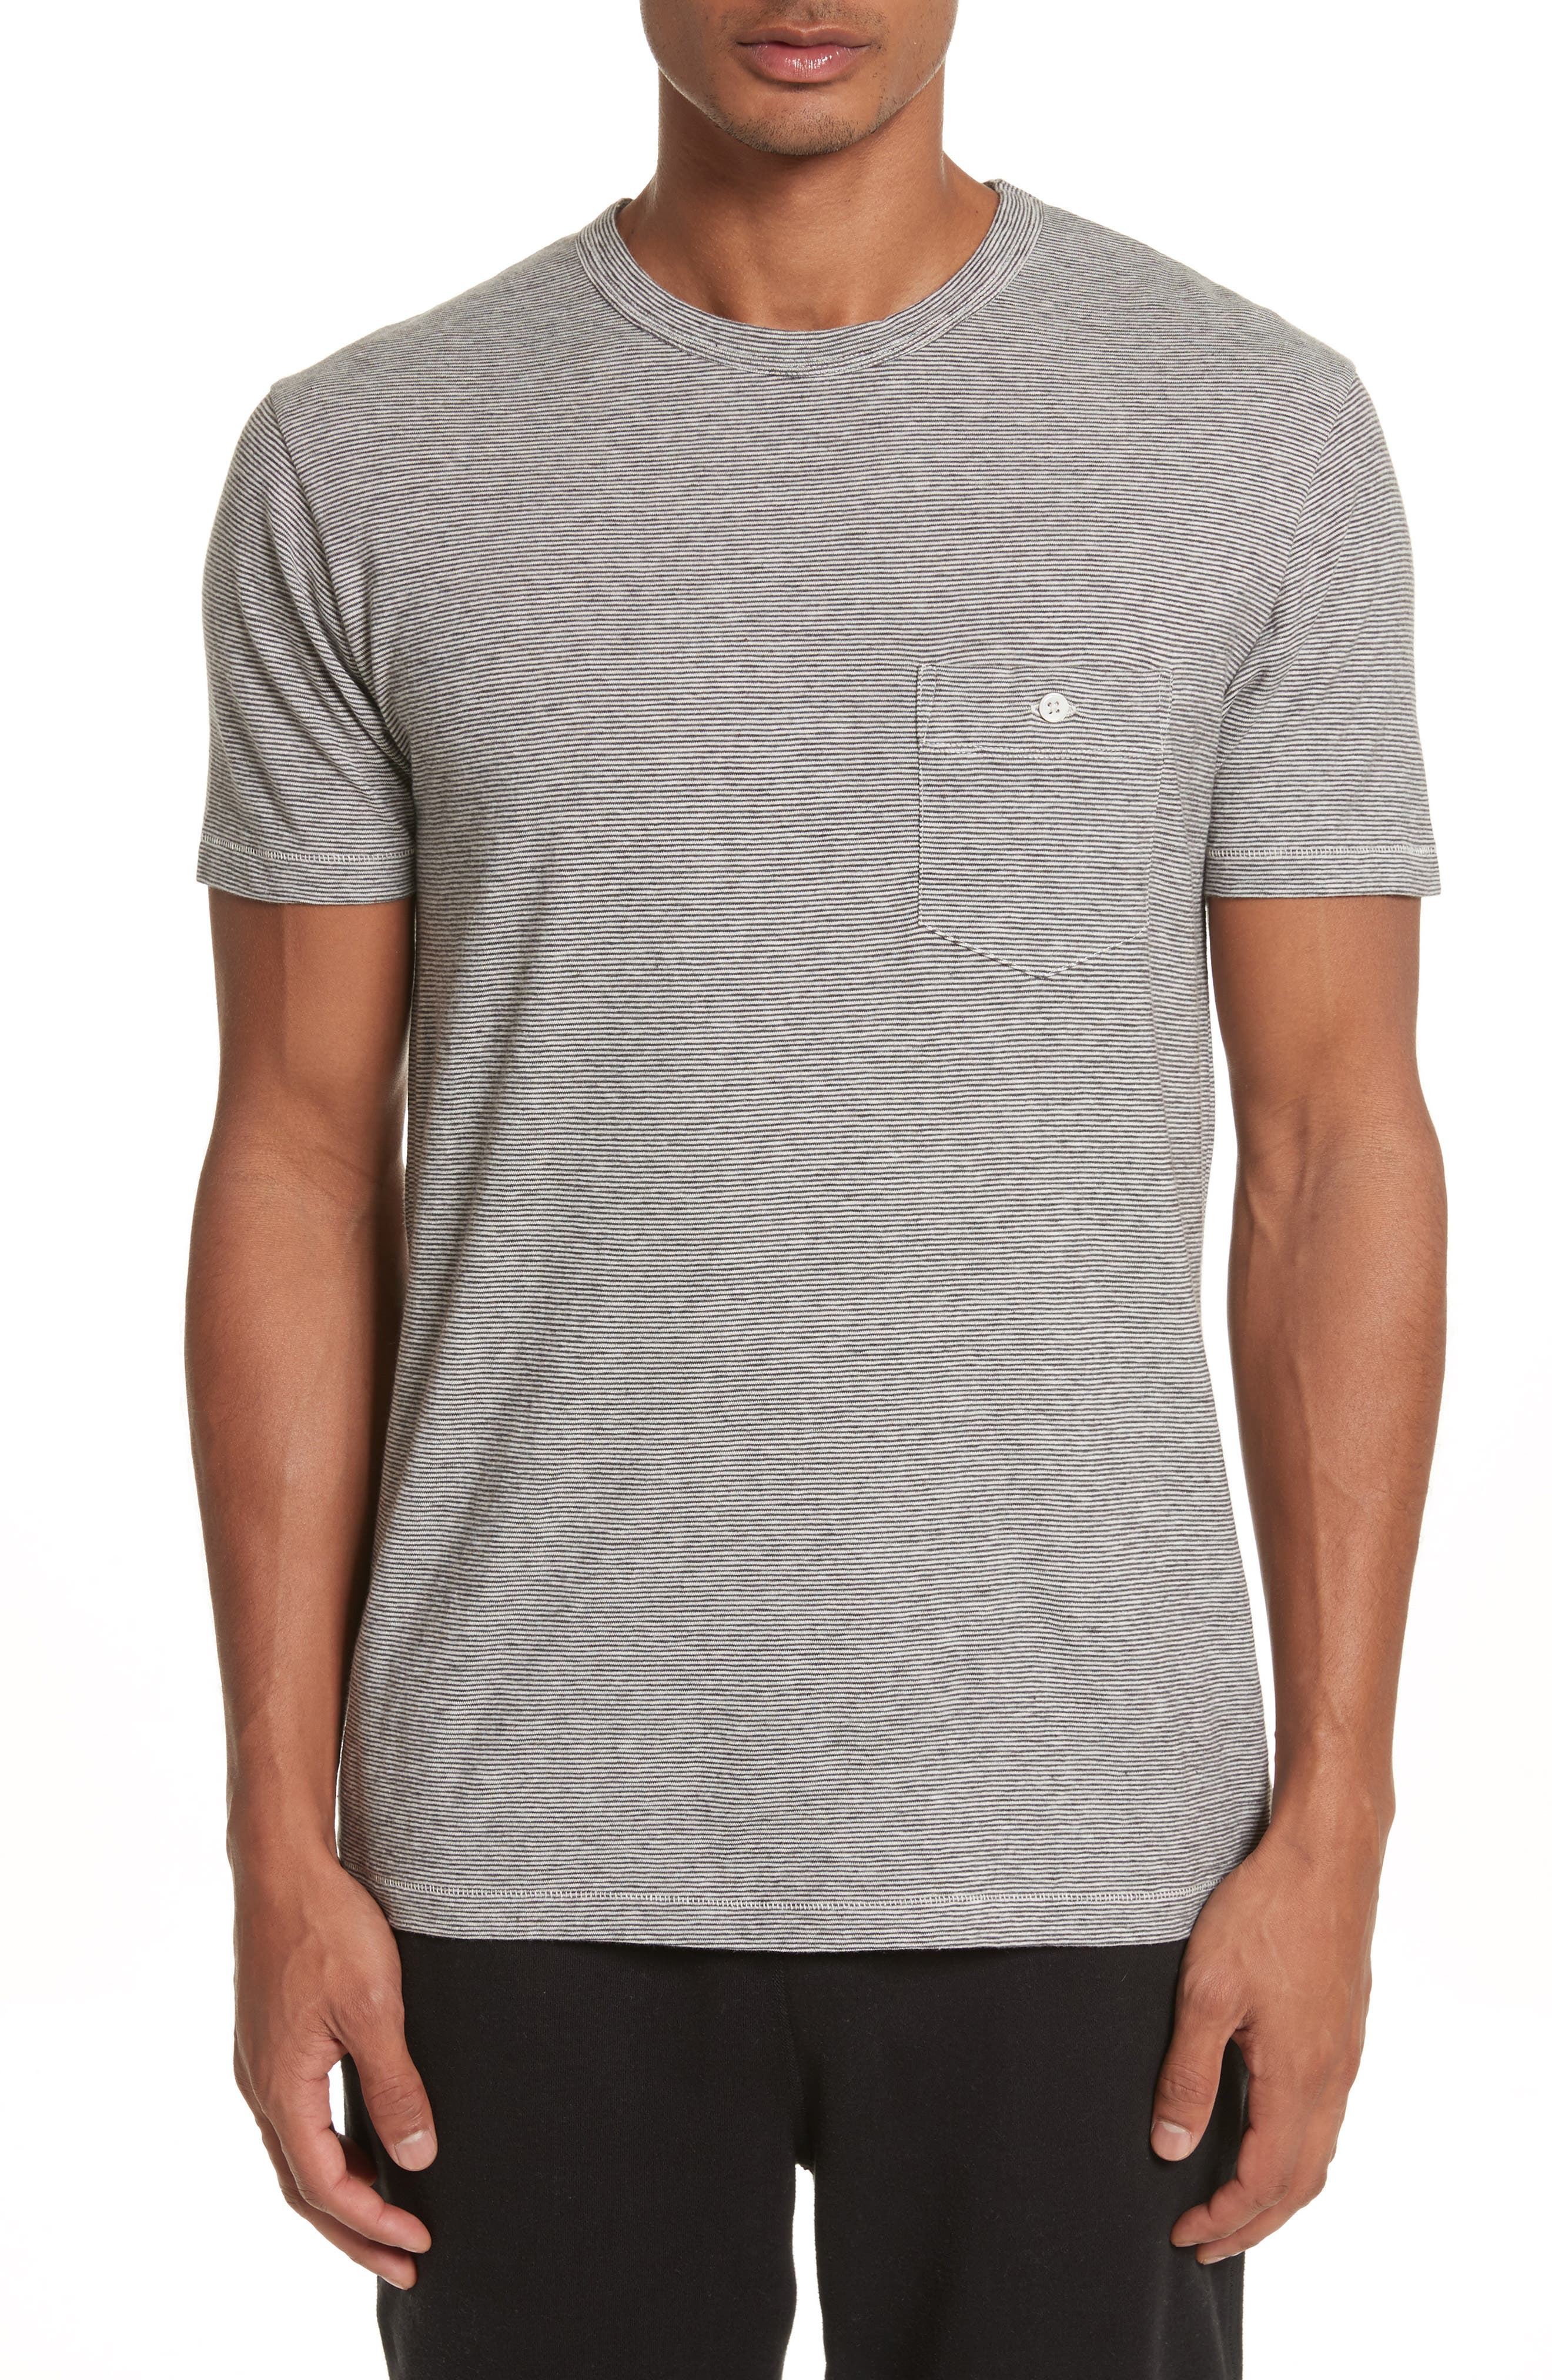 Todd Snyder Microstripe Pocket T-Shirt